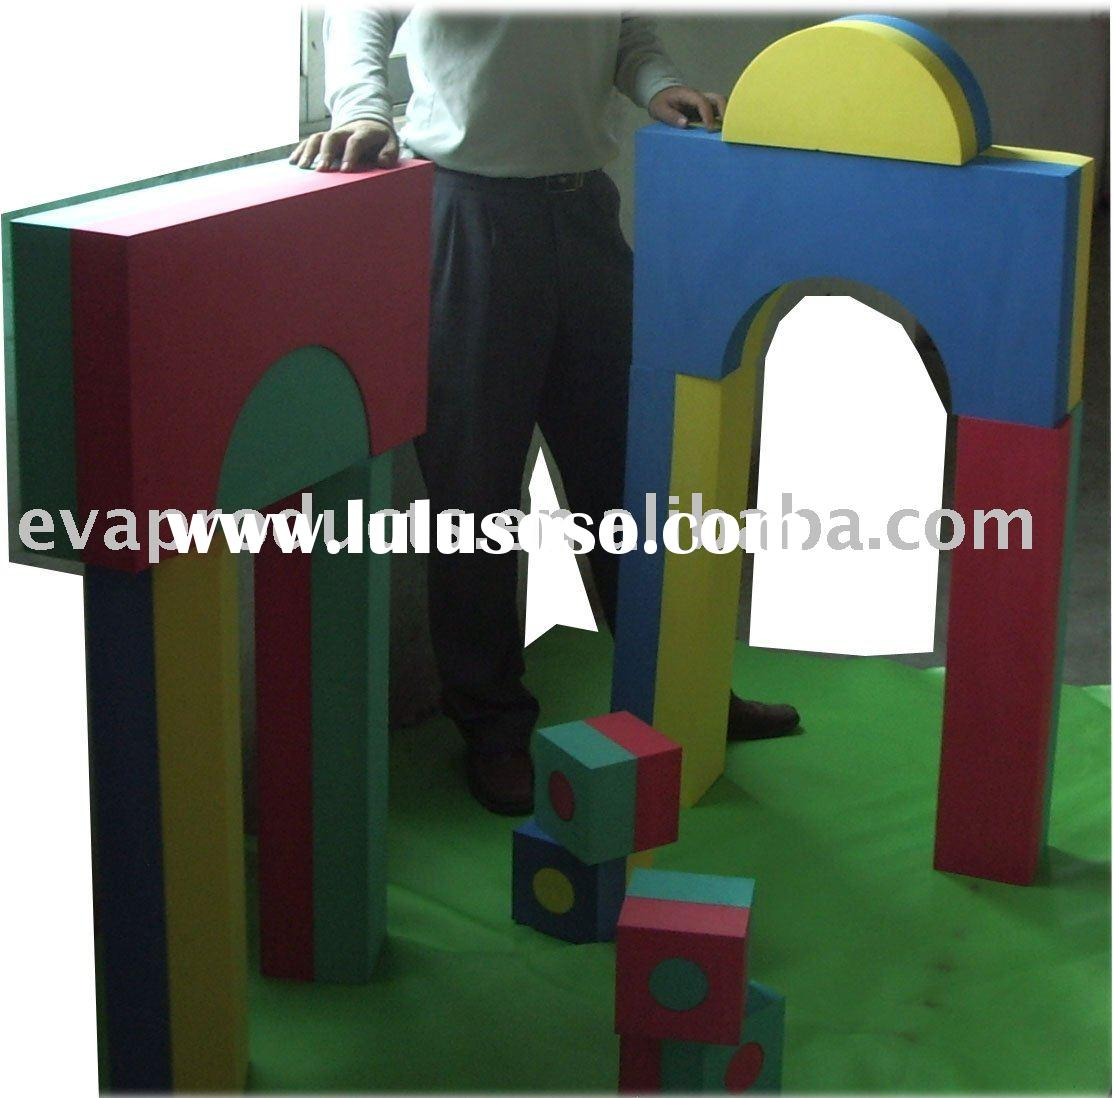 Giant Foam Block Set Eva